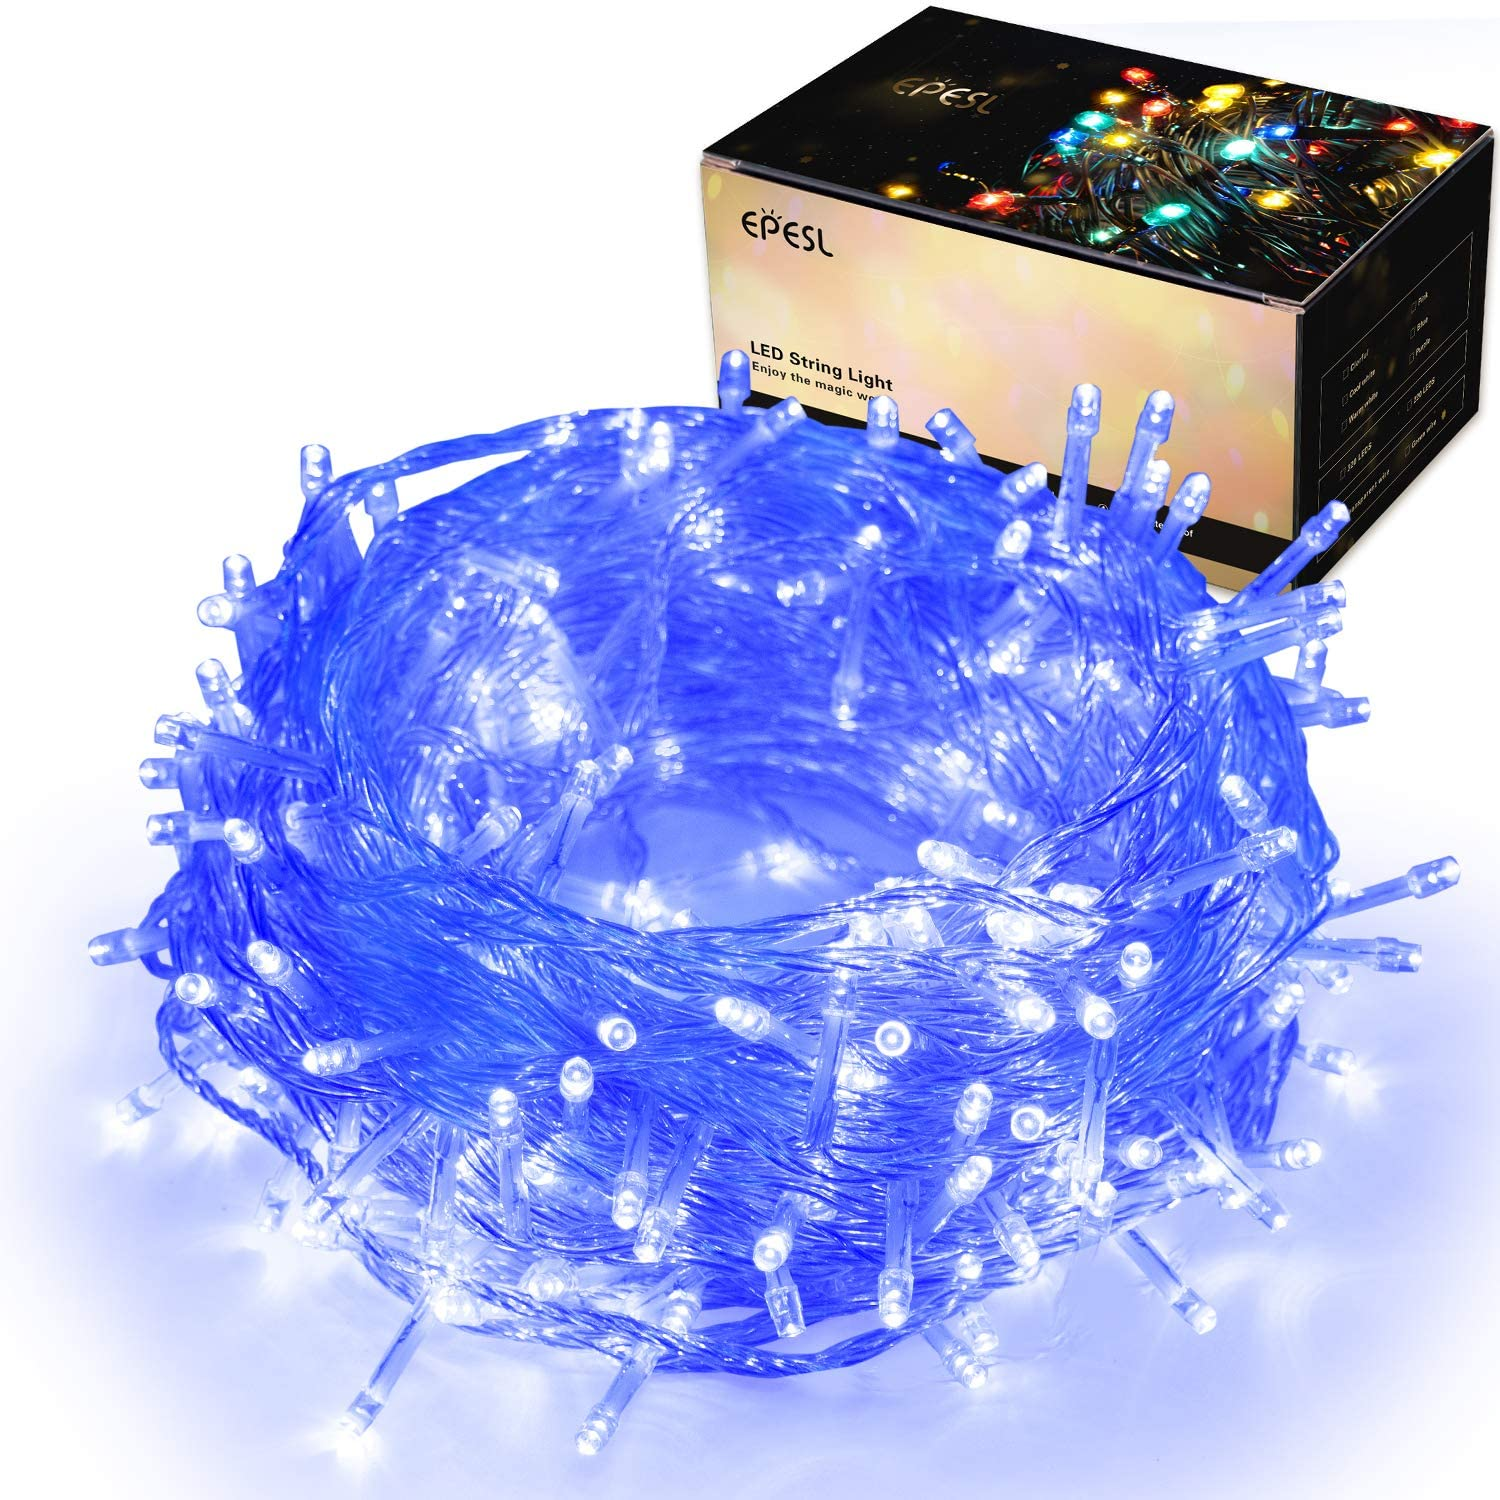 320LEDs Halloween Decor String Lights, 32m/105ft 8 Modes End-to-End Extendable Plug in Waterproof Indoor/Outdoor Fairy Twinkle Lights for Thanksgiving Day/Tree/Wedding/Patio/Room/Home - Blue